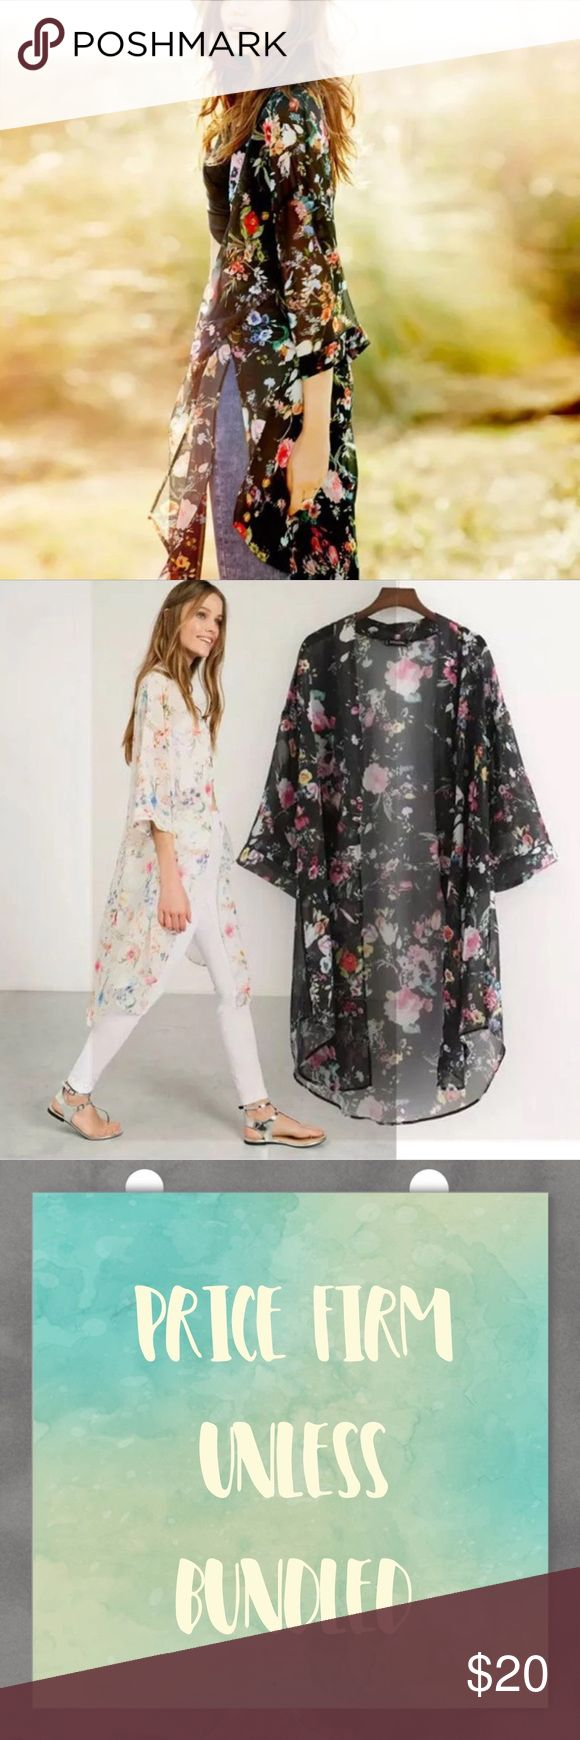 Floral Chiffon Kimono Floral Chiffon Kimono. Made of 100% polyester. Fits true to size. Available in Small, medium and large. Price firm unless bundled. Bundle 3+ and save 15% Tops